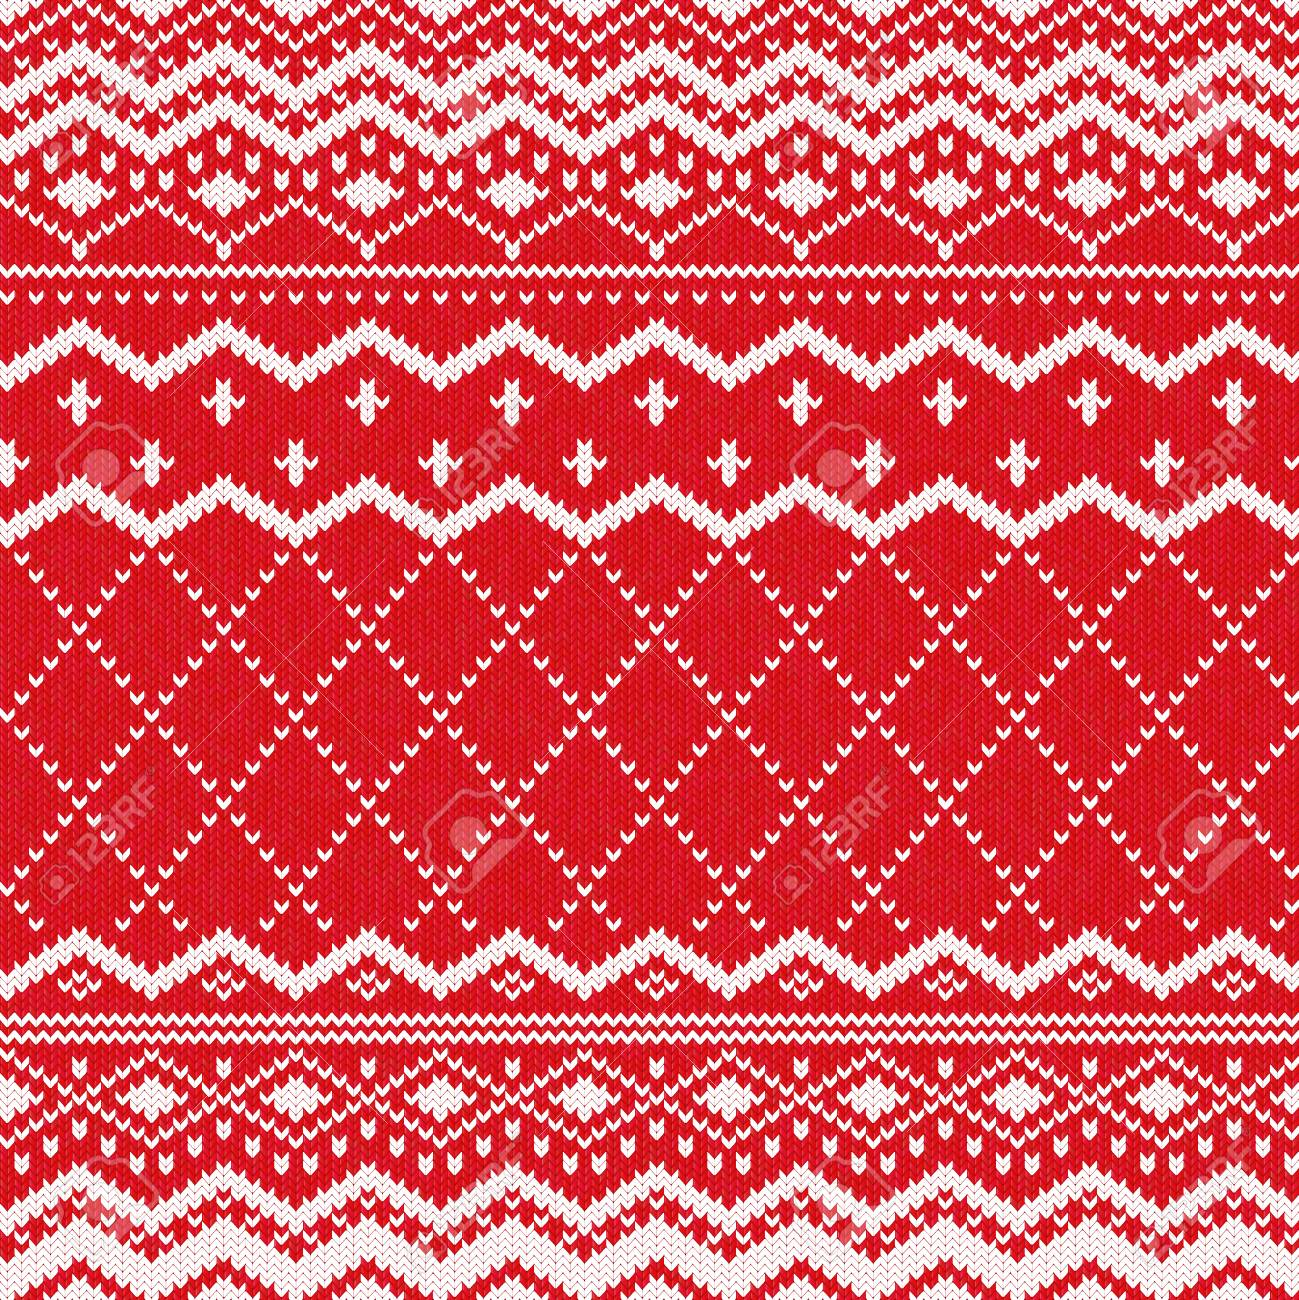 Scandinavian Knitted Pattern Or Nordic Knitted Ornament. Red ...